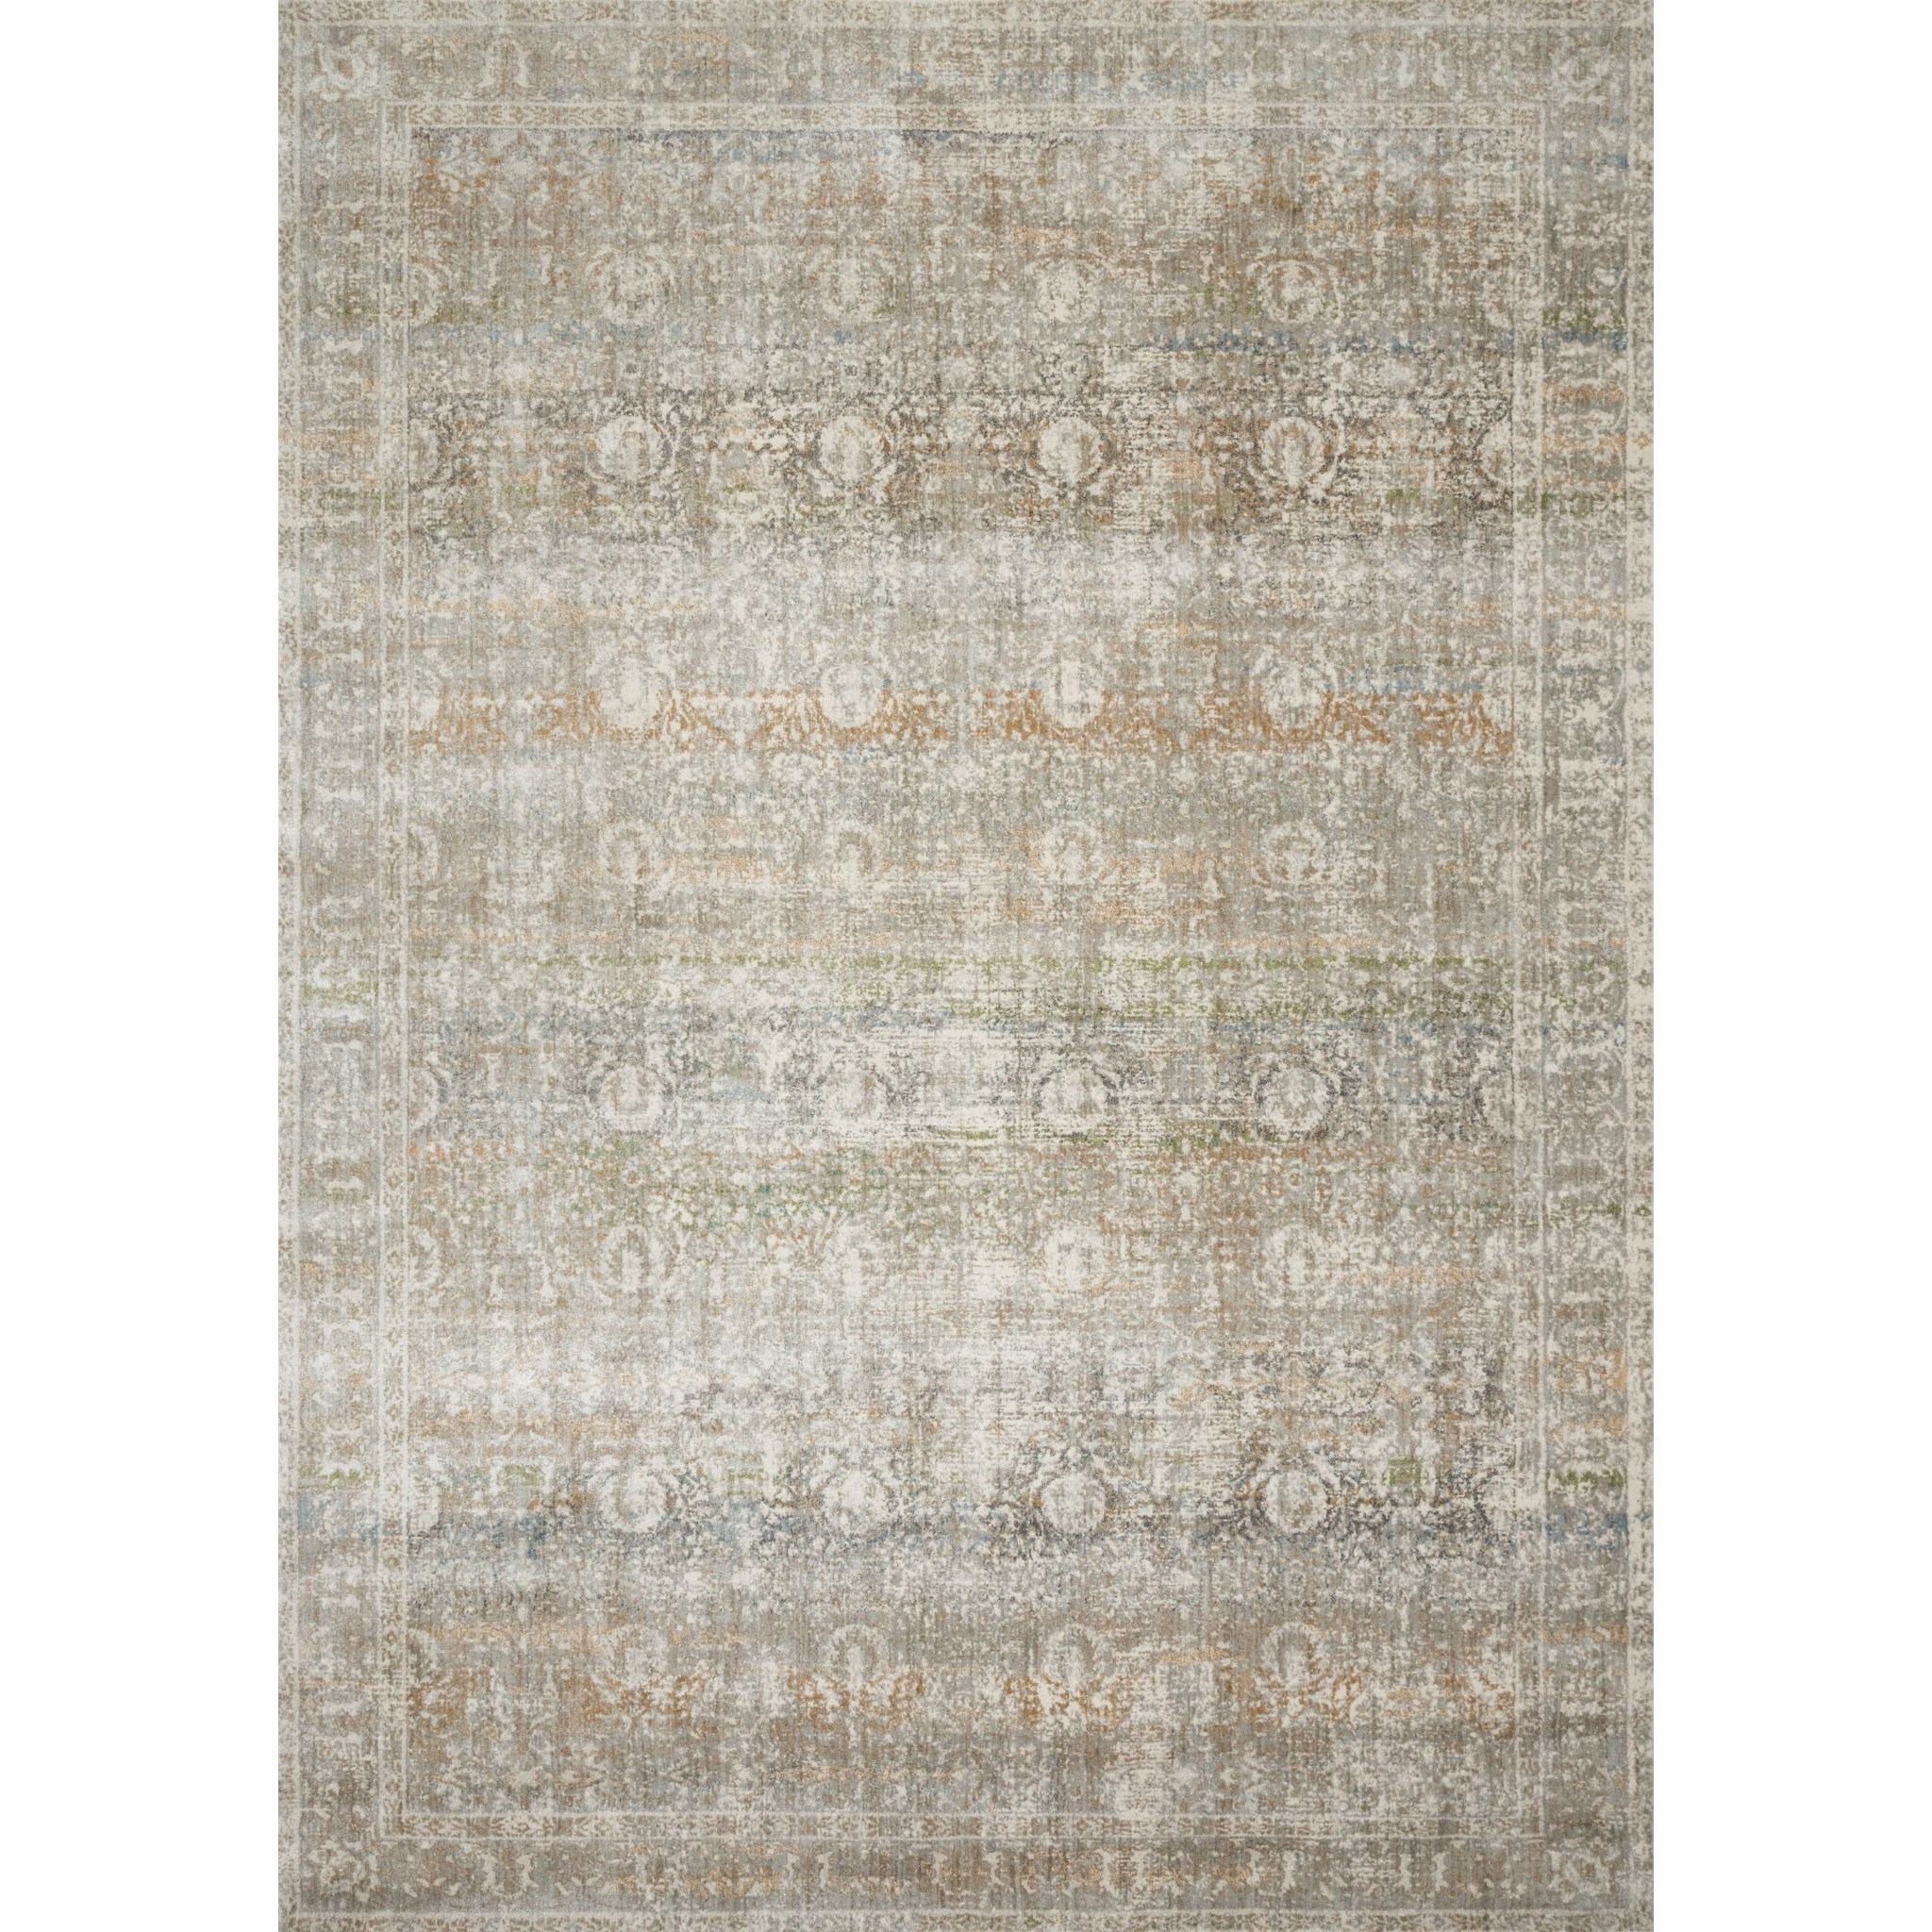 "Anastasia 5'-3"" x 5'-3"" Round Rug by Loloi Rugs at Virginia Furniture Market"